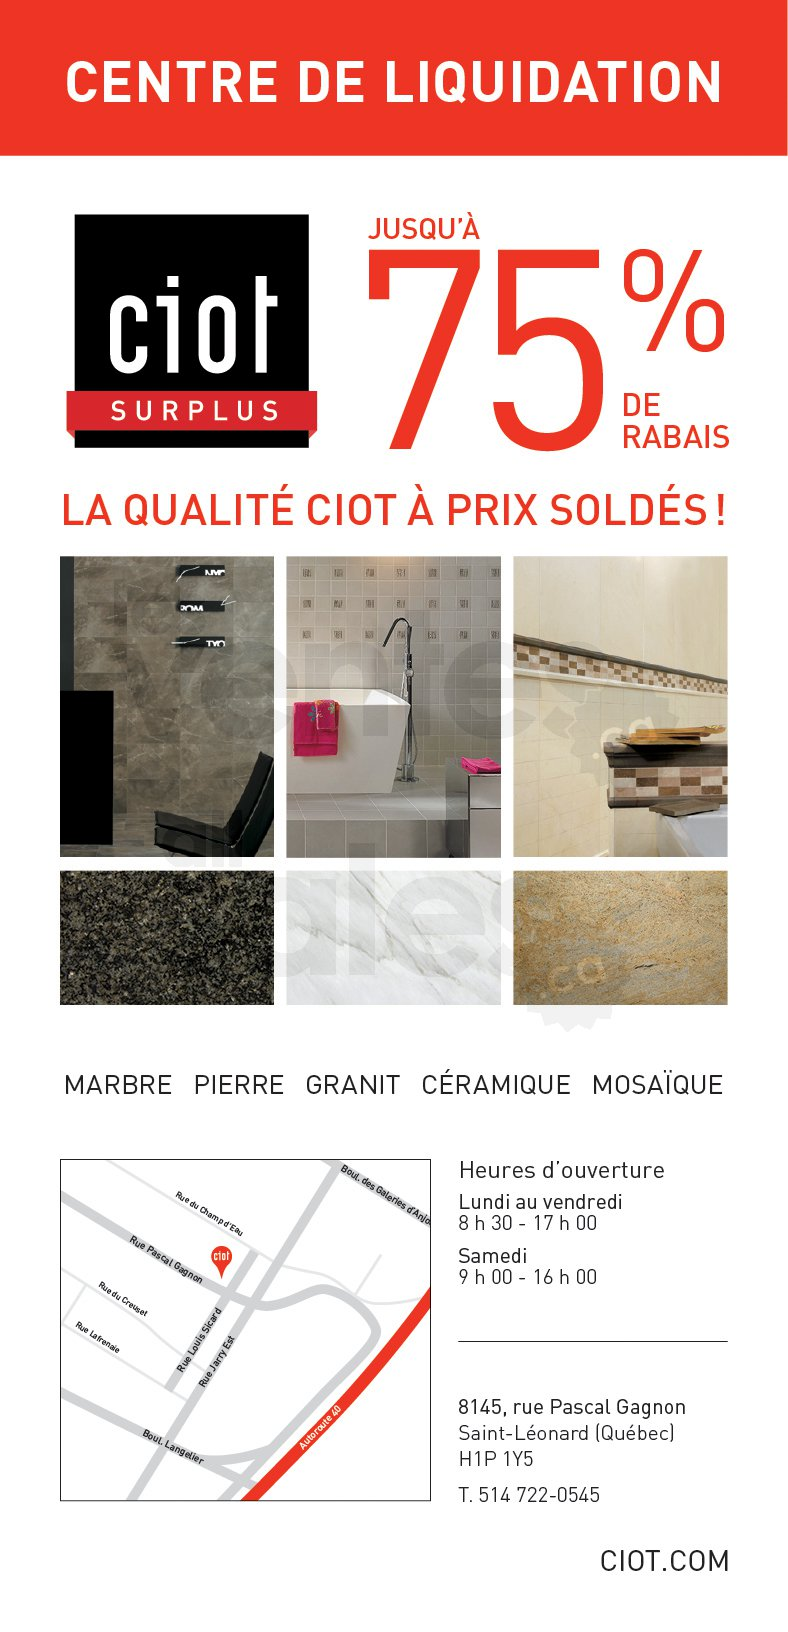 Ciot surplus liquidation jusqu 39 75 for Entrepot de liquidation